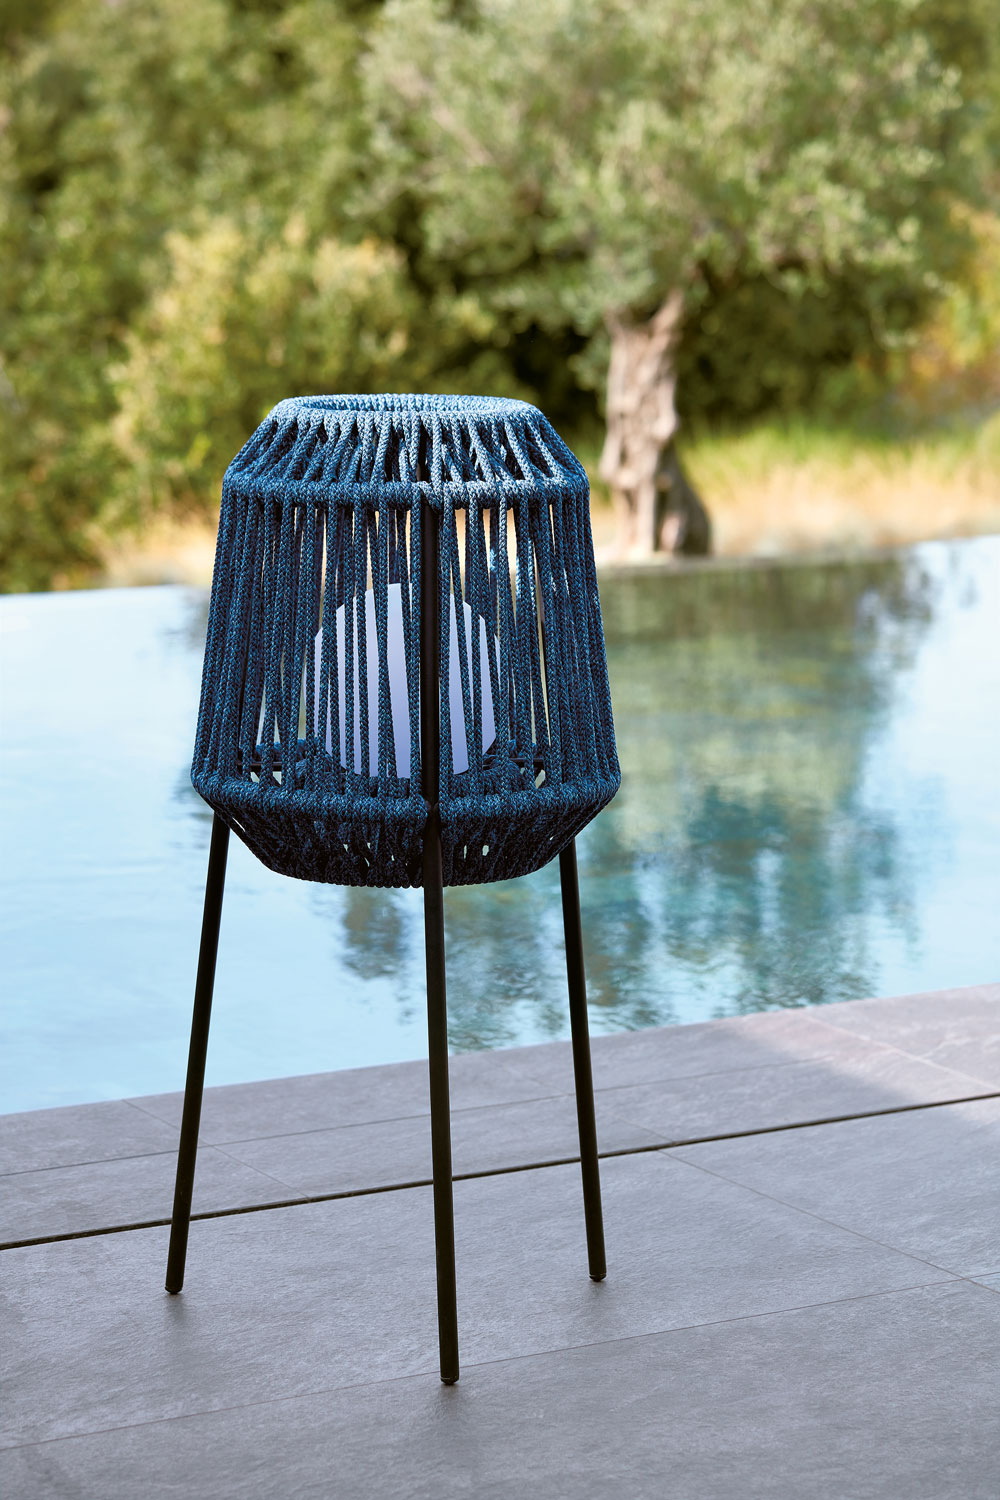 mcm-dehors-toutes-sifas-lighting-lampadaire-eric-carrere